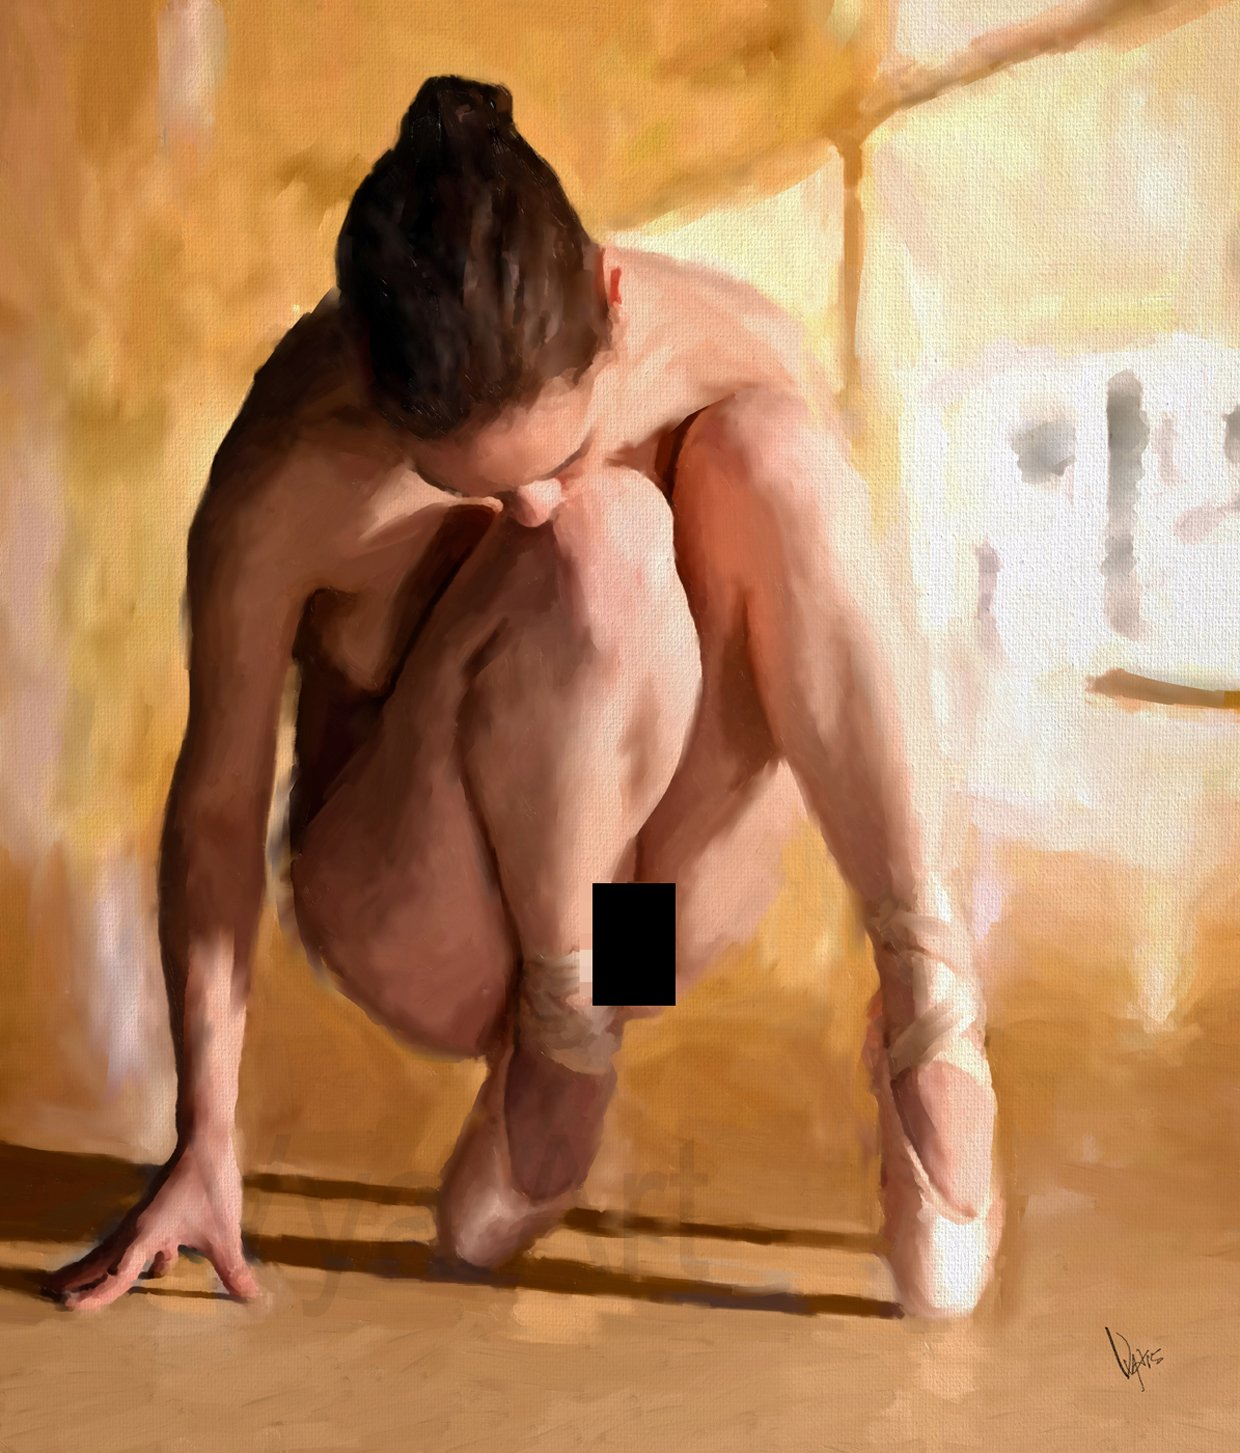 Nudist pics in high quality